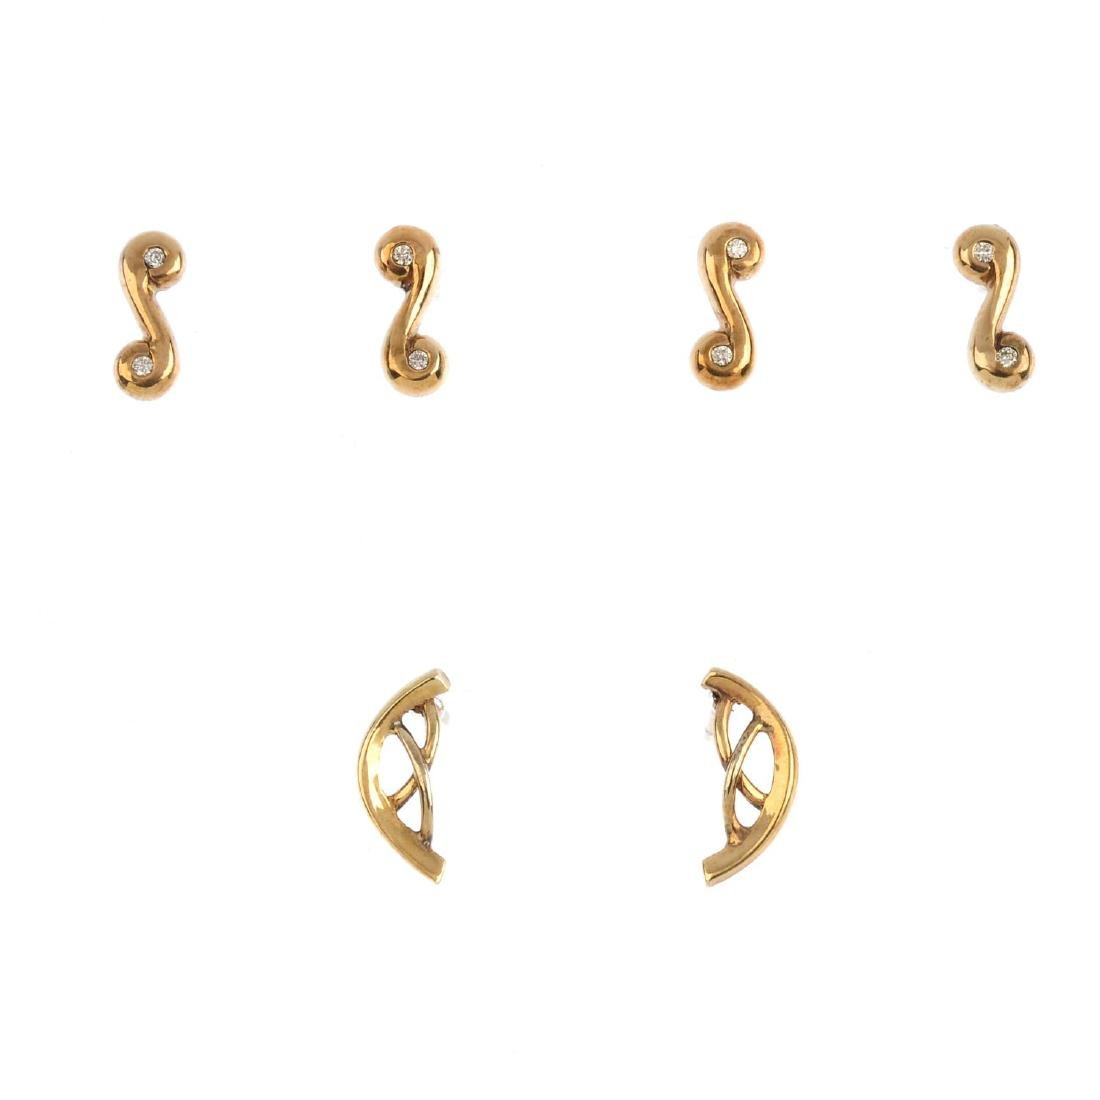 Three pairs of 9ct gold earrings. To include two pairs